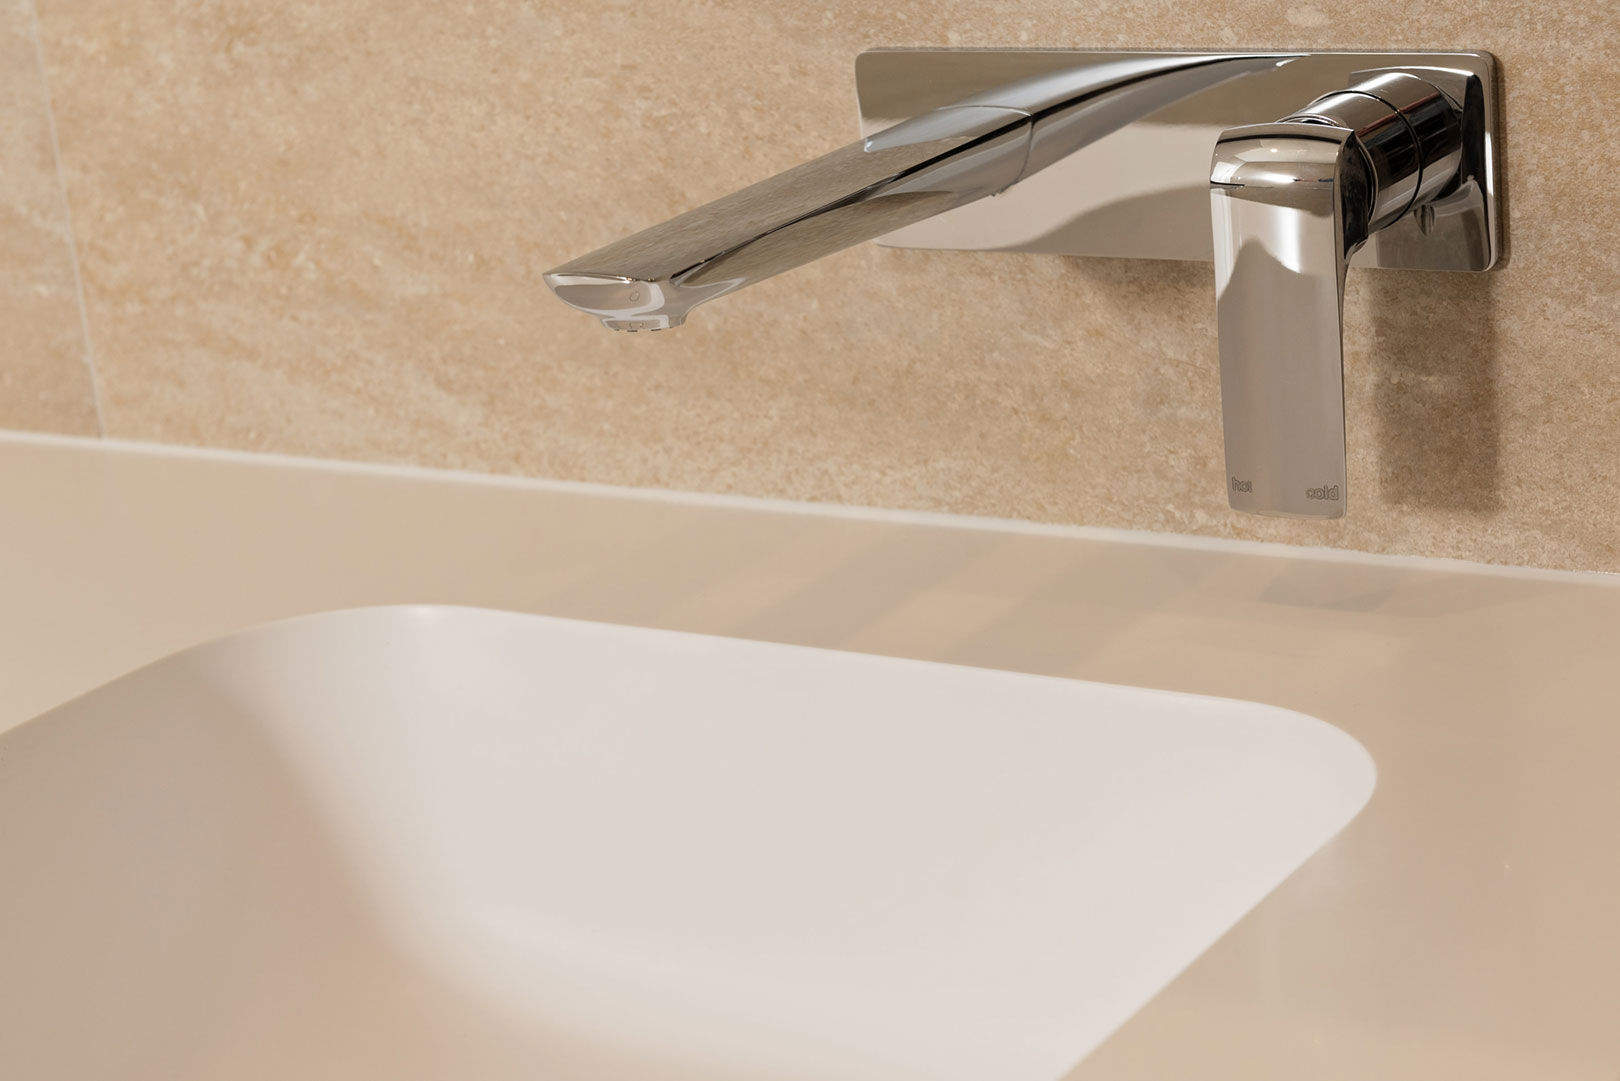 Corian integrated Serenity 75109 Sink, Milli: Glance Wall Basin Mixer Set